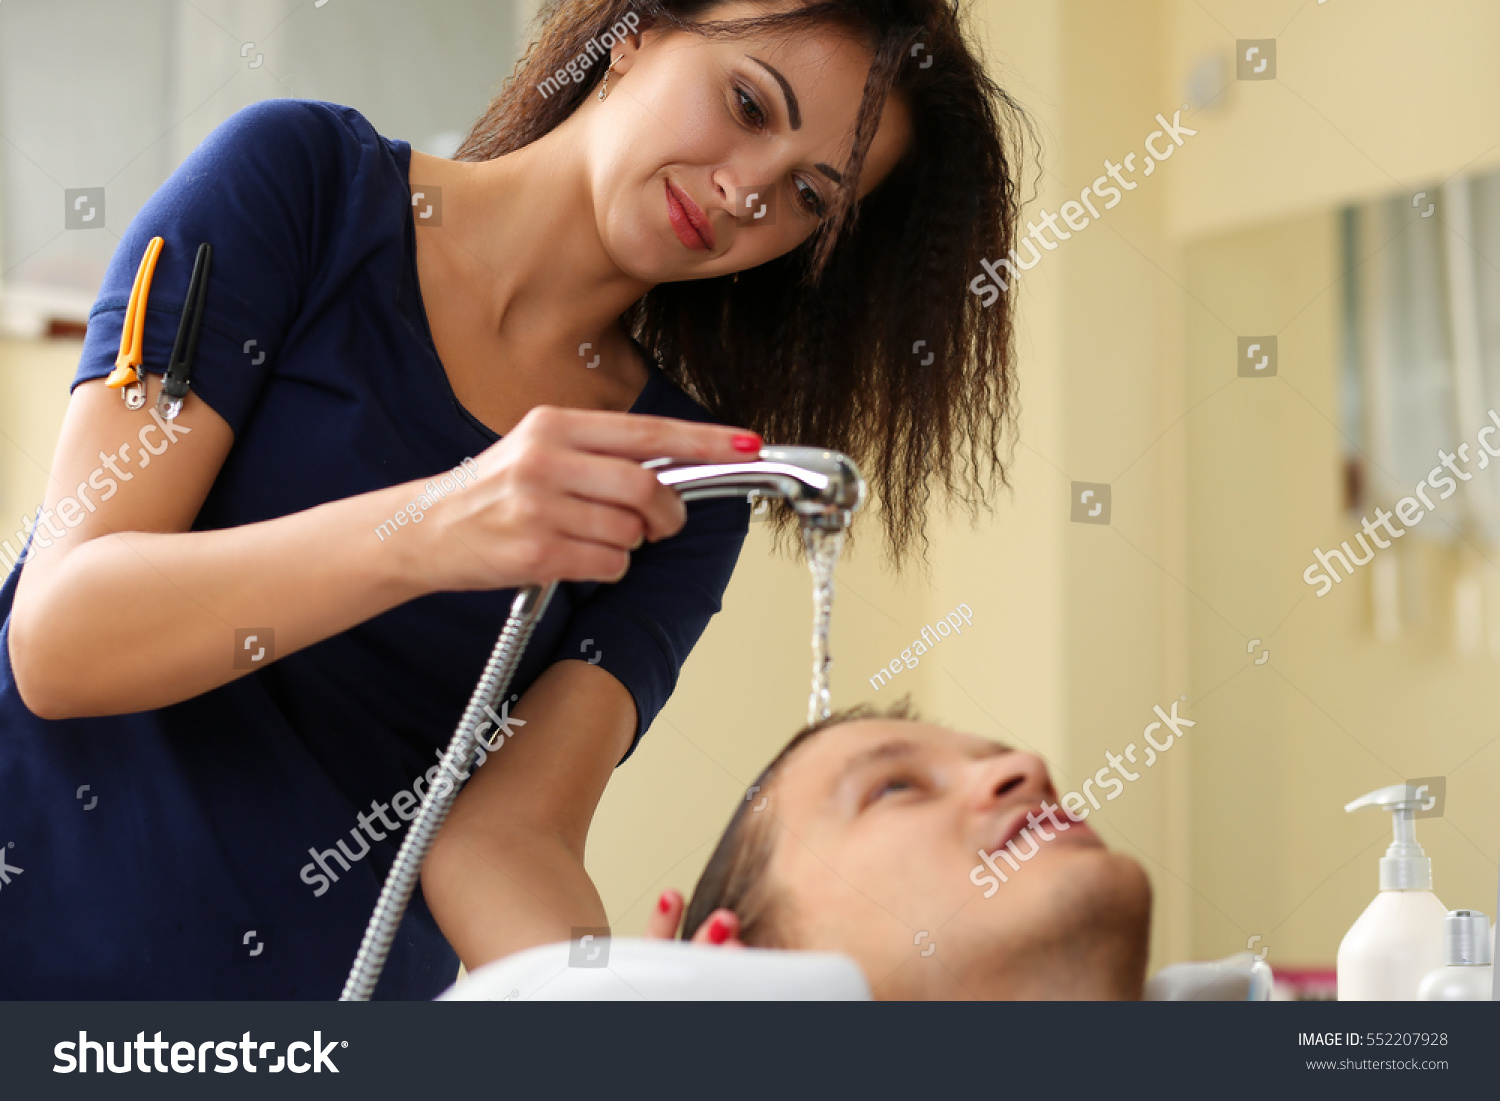 Woman Washing Hair Handsome Smiling Man Stock Photo Edit Now